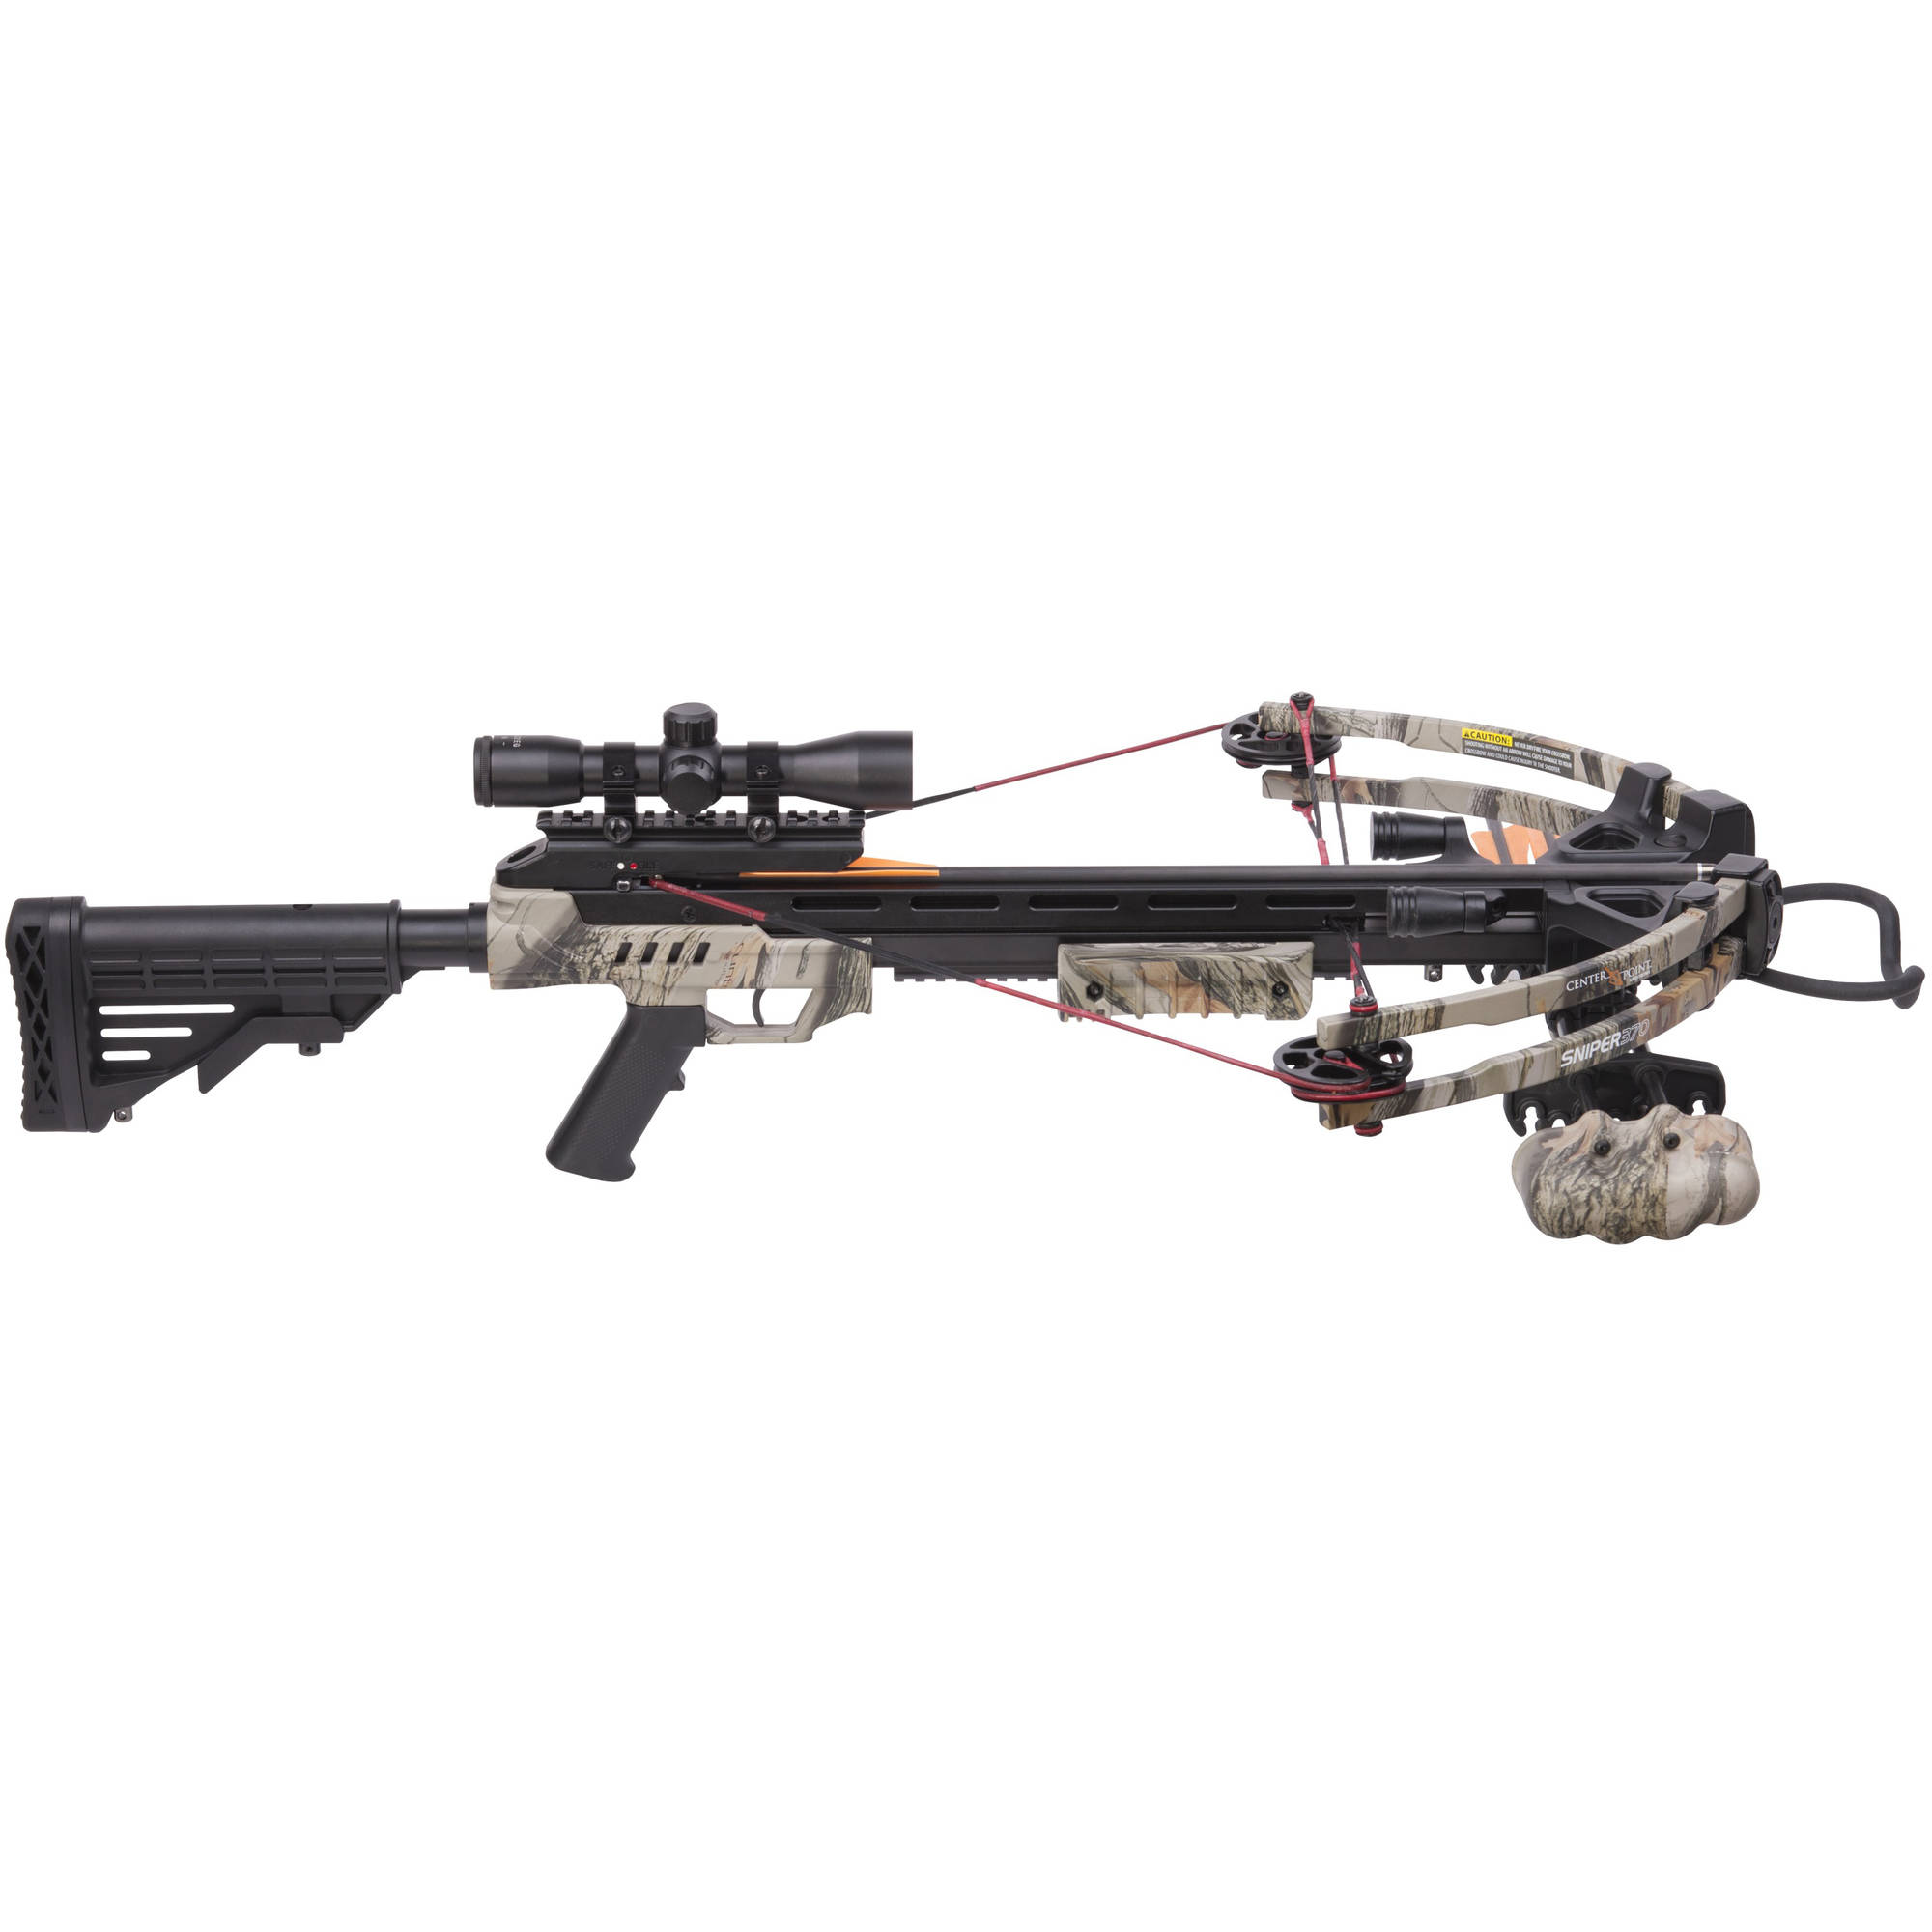 CenterPoint Archery AXCS185BK Compound Crossbow Kit 370fps by Crosman